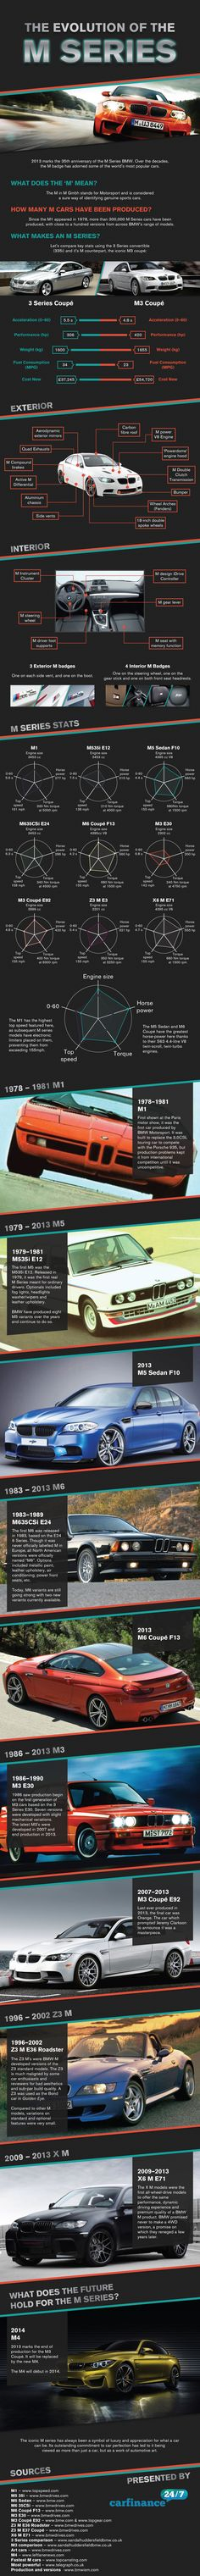 The Mostly Glorious History Of BMW's M Cars In One Cool Chart